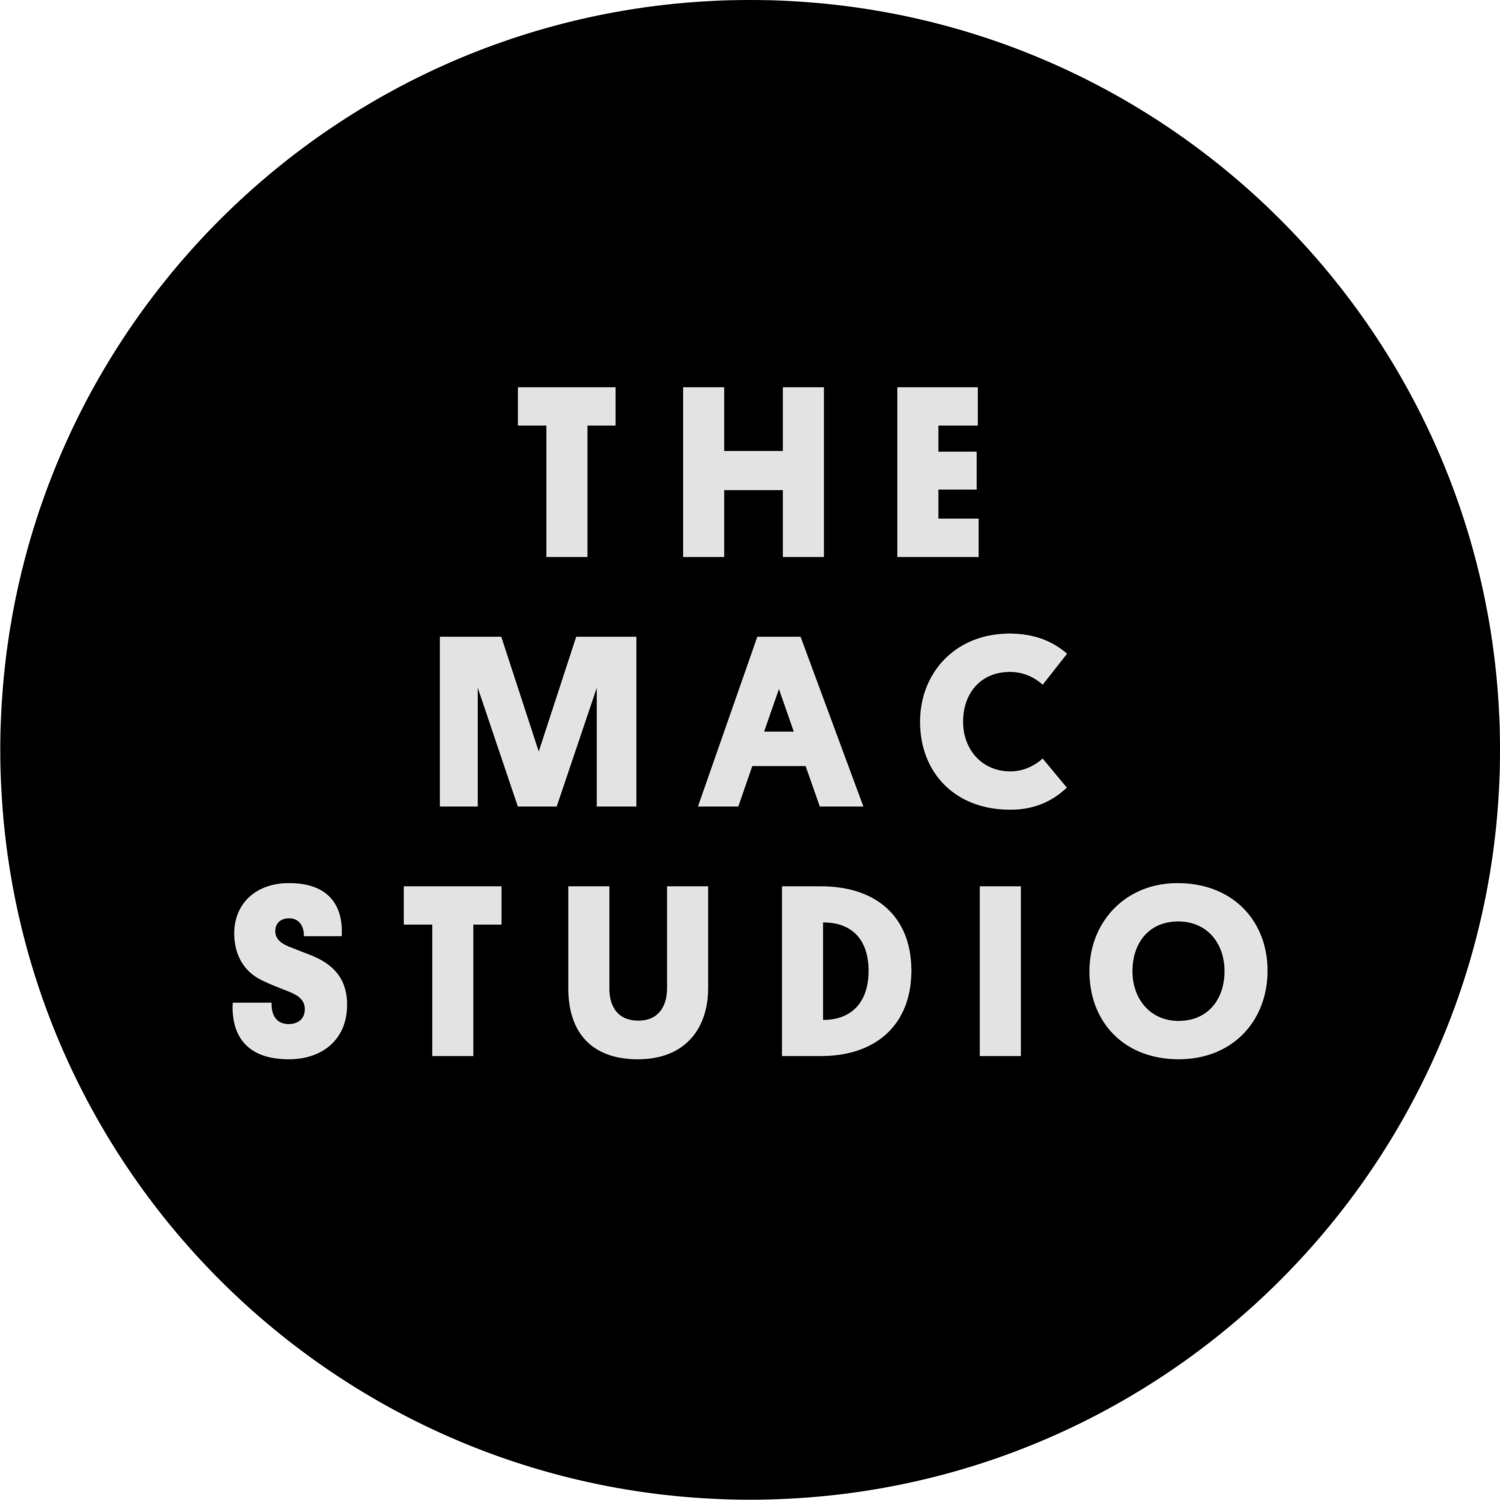 The Mac Studio